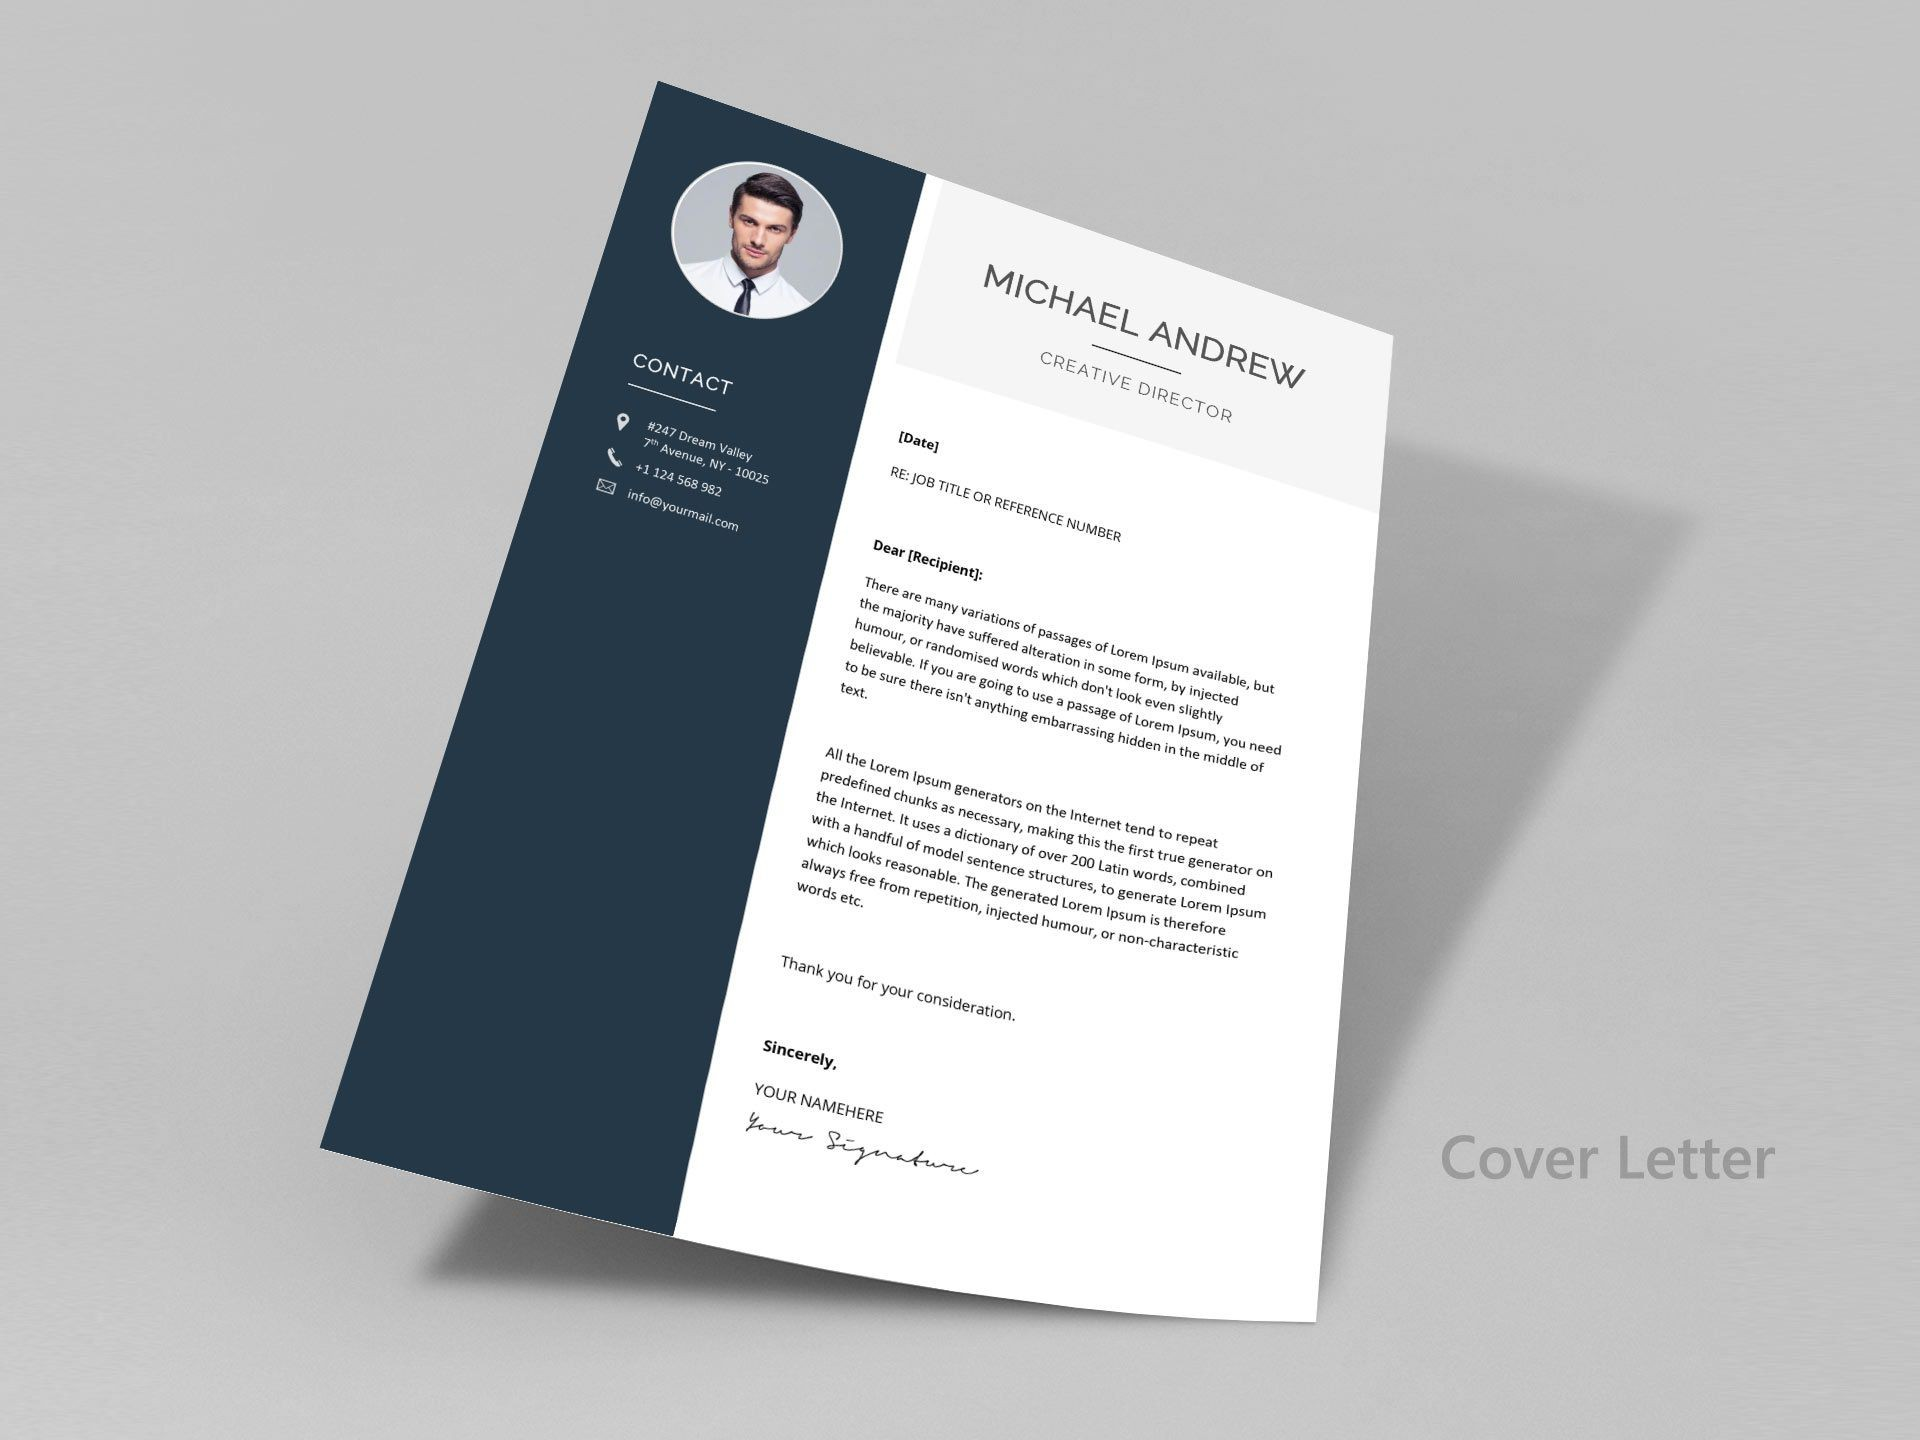 009 Astounding Professional Cv Template 2019 Free Download Highest Quality 1920